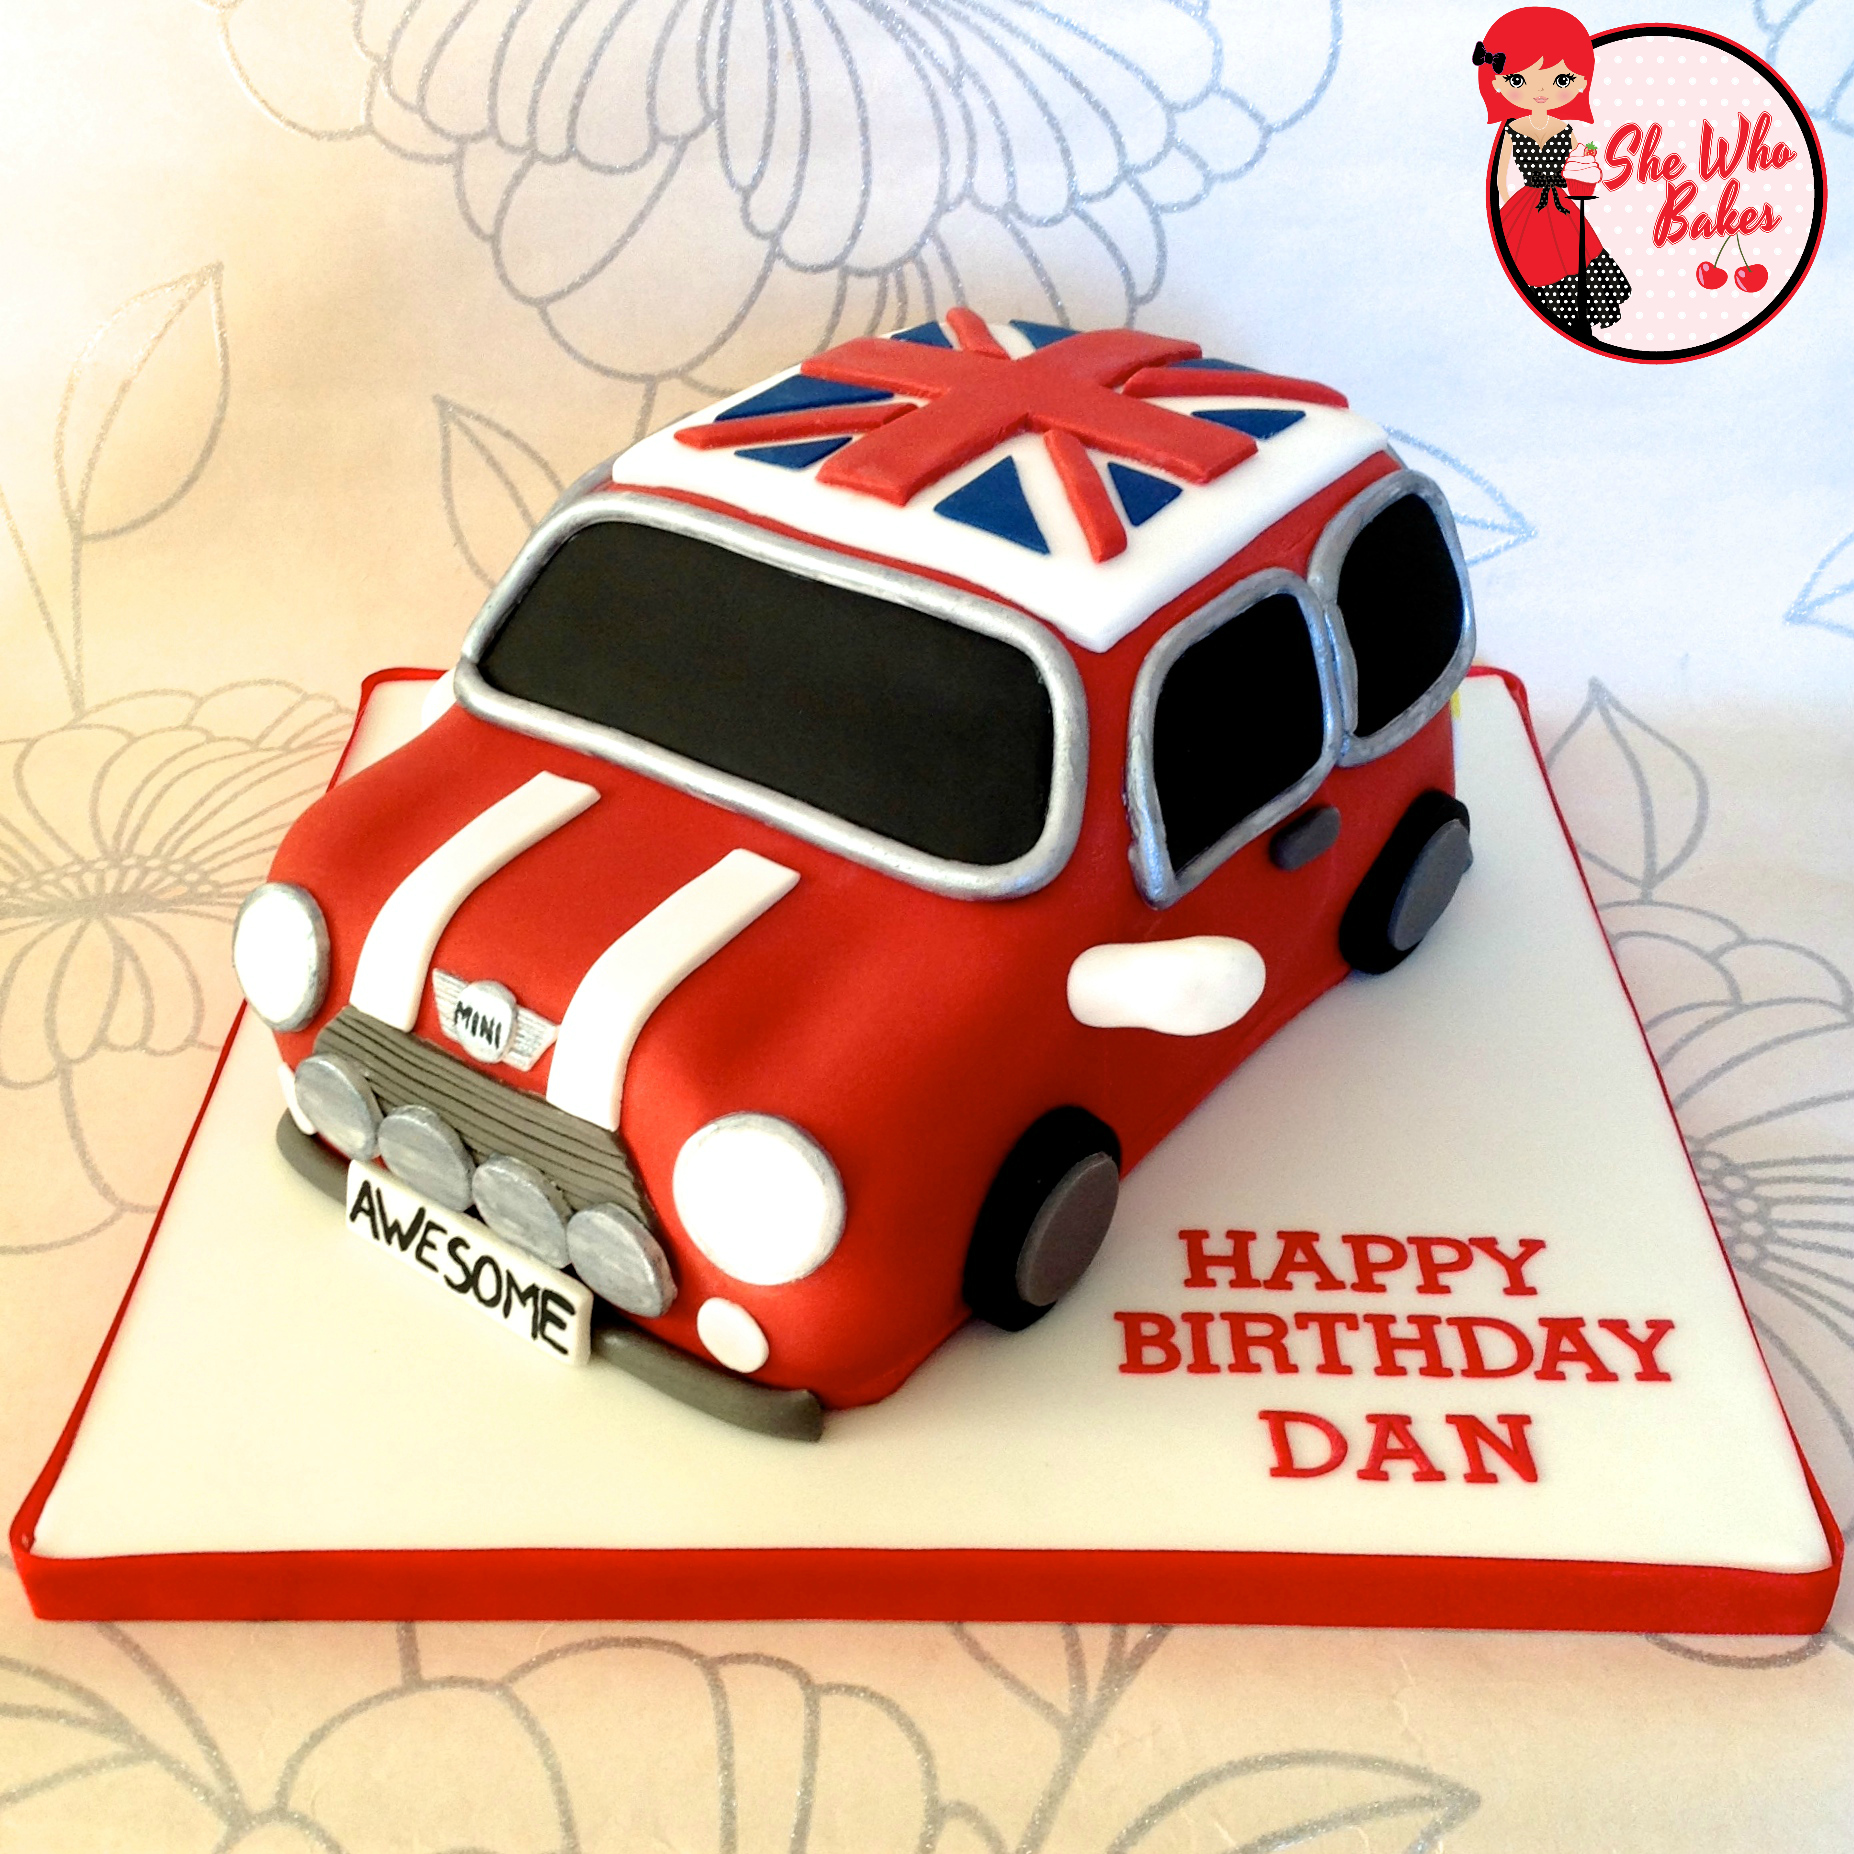 How To Make A Car Cake Mini Cooper She Who Bakes